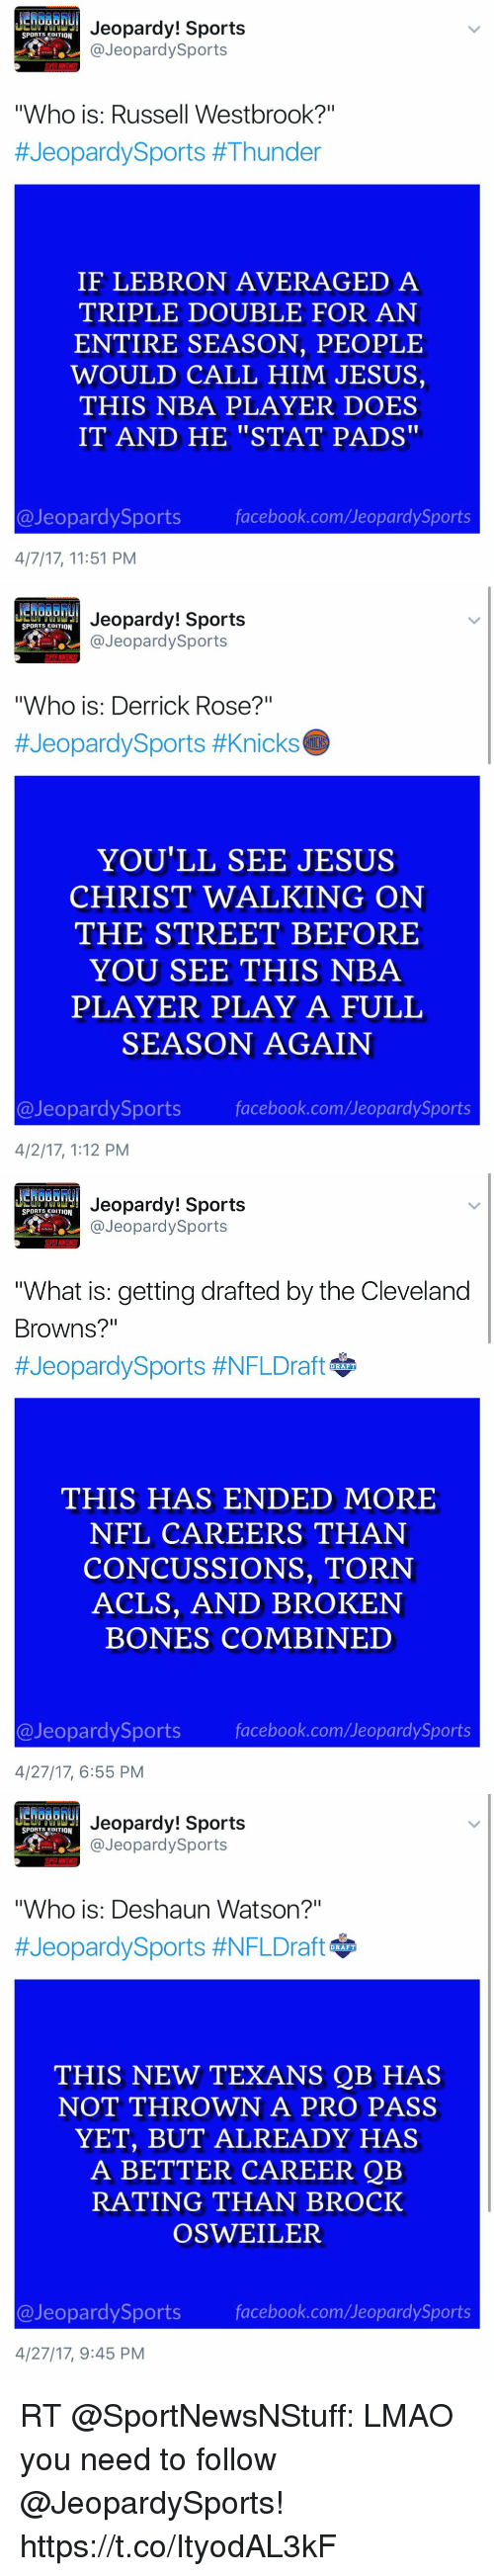 "Bones, Cleveland Browns, and Derrick Rose: Jeopardy! Sports  SPORTS EDITION  @Jeopardy Sports  ""Who is: Russell Westbrook?""  #Jeopardy Sports #Thunder  IF LEBRON AVERAGED  A  TRIPLE DOUBLE FOR AN  ENTIRE SEASON, PEOPLE  WOULD CALL HIM JESUS,  THIS NBA PLAYER DOES  IT AND HE STAT PADS  @Jeopardy Sports  facebook.com/UeopardySports  4/7/17, 11:51 PM   Jeopardy! Sports  SPORTS EDITION  @Jeopardy Sports  ""Who is: Derrick Rose?""  #Jeopardy Sports #Knicks  YOU'LL SEE JESUS  CHRIST WALKING ON  THE STREET BEFORE  YOU SEE THIS NBA  PLAYER PLAY A FULL  SEASON AGAIN  Jeopardy Sports  facebook.com/Jeopardy Sports  4/2/17, 1:12 PM   Jeopardy! Sports  SPORTS EDITION  @Jeopardy Sports  TWhat is: getting drafted by the Cleveland  Browns?""  #Jeopardy Sports #NFLDraft  DRAFT  THIS HAS ENDED MORE  NFL CAREERS THAN  CONCUSSIONS, TORN  ACLS, AND BROKEN  BONES COMBINED  @Jeopardy Sports  facebook.com/JeopardySports  4/27/17, 6:55 PM   Jeopardy! Sports  SPORTS EDITION  .2 @Jeopardy Sports  ""Who is: Deshaun Watson?""  #Jeopardy Sports #NFLDraft  DRAFT  THIS NEW TEXANS QB HAS  NOT THROWN  A PRO PASS  YET, BUT ALREADY HAS  A BETTER CAREER QB  RATING THAN BROCK  OSWEILER  @Jeopardy Sports  facebook.com/UeopardySports  4/27/17, 9:45 PM RT @SportNewsNStuff: LMAO you need to follow @JeopardySports! https://t.co/ItyodAL3kF"